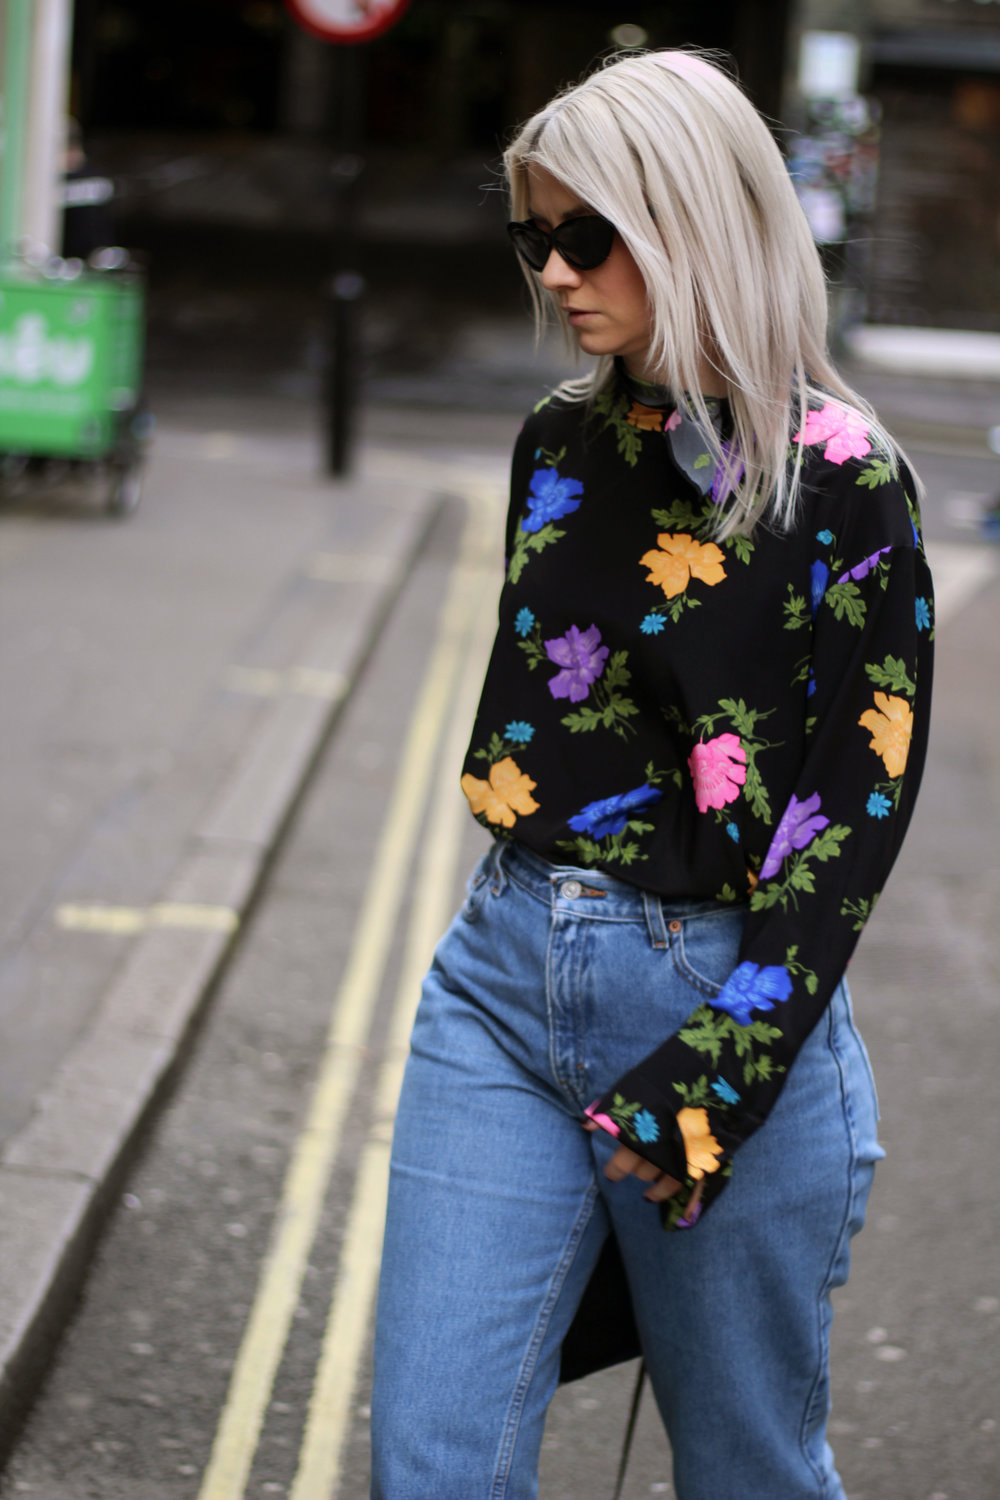 Topshop boutique silk blouse, blogging with a full time job, northern magpie, joey taylor 2